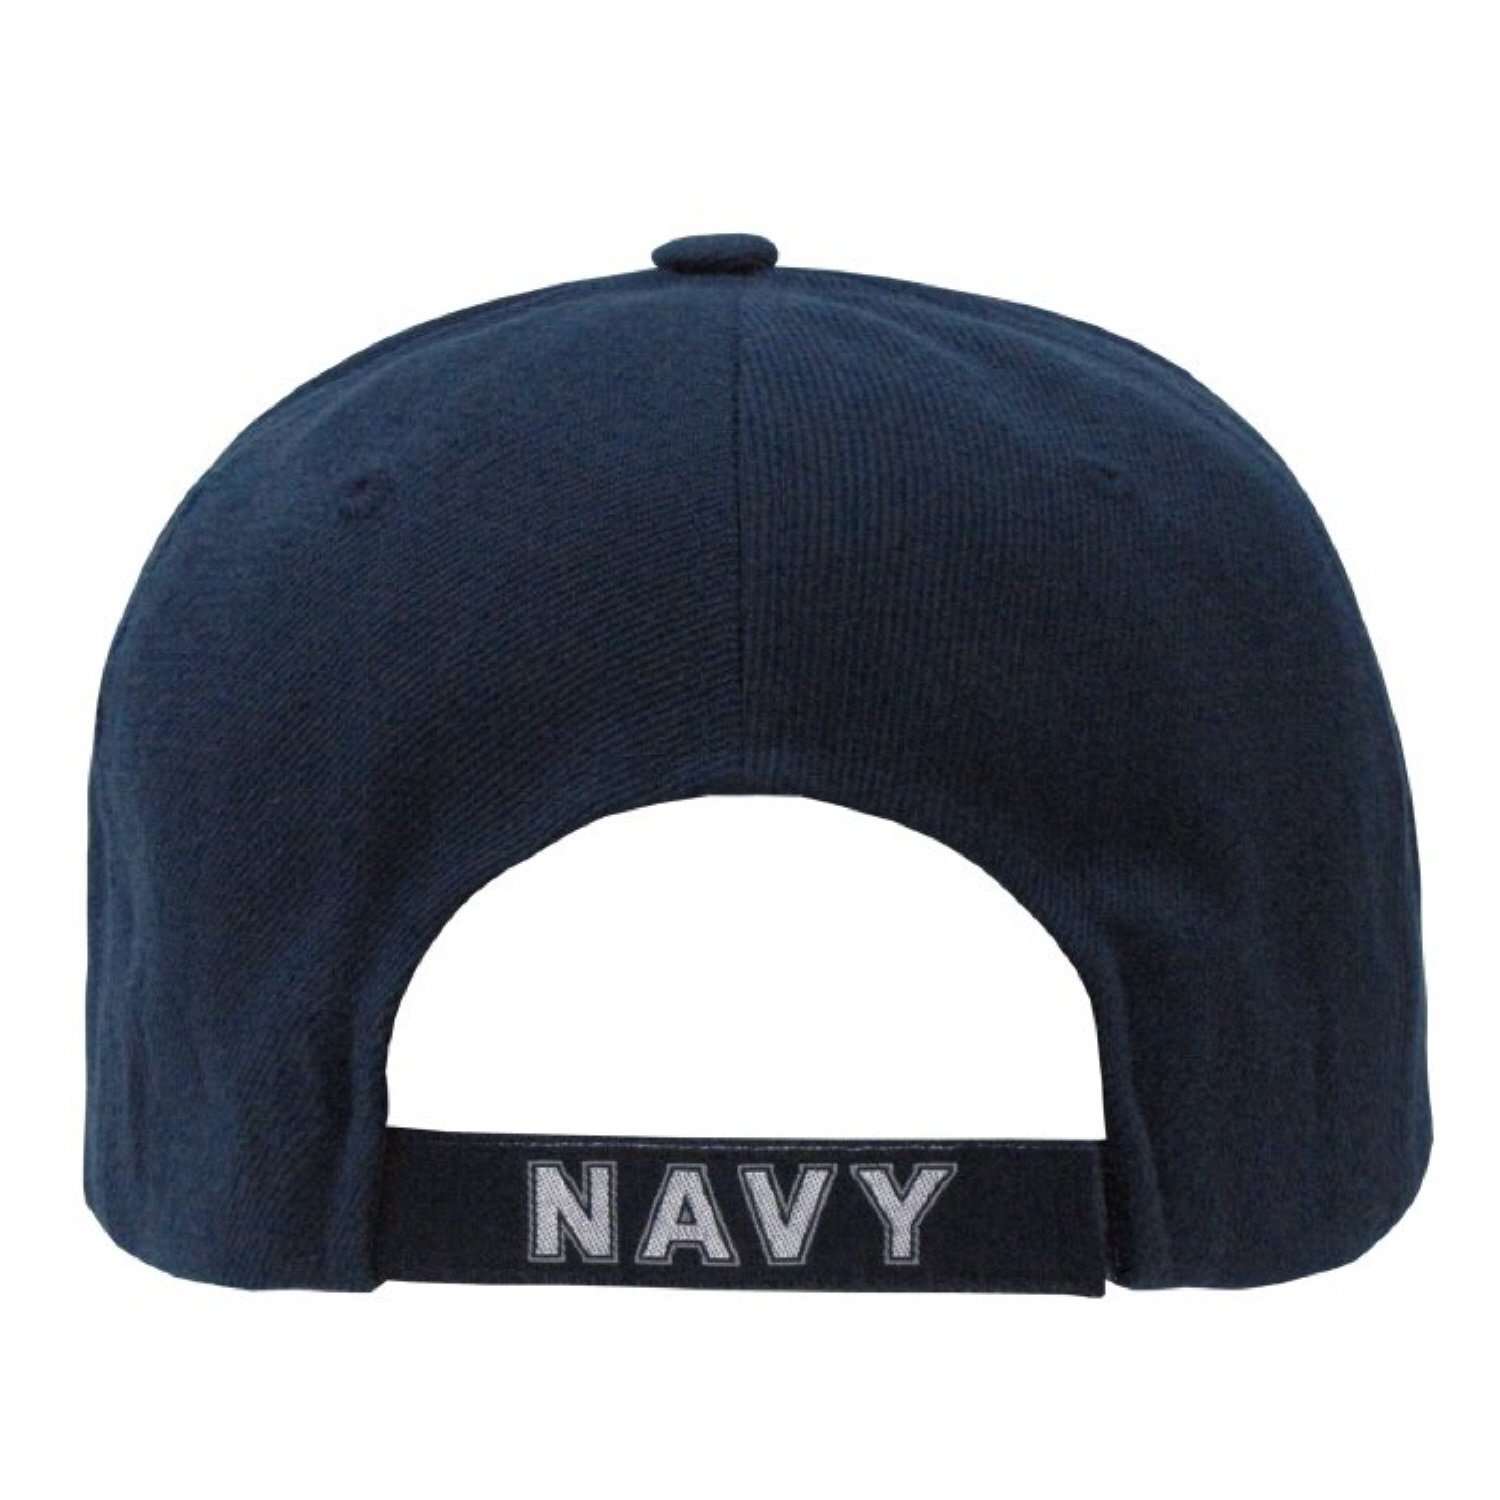 1500x1500 Us Navy Text Embroidered Military Baseball Cap Hat By